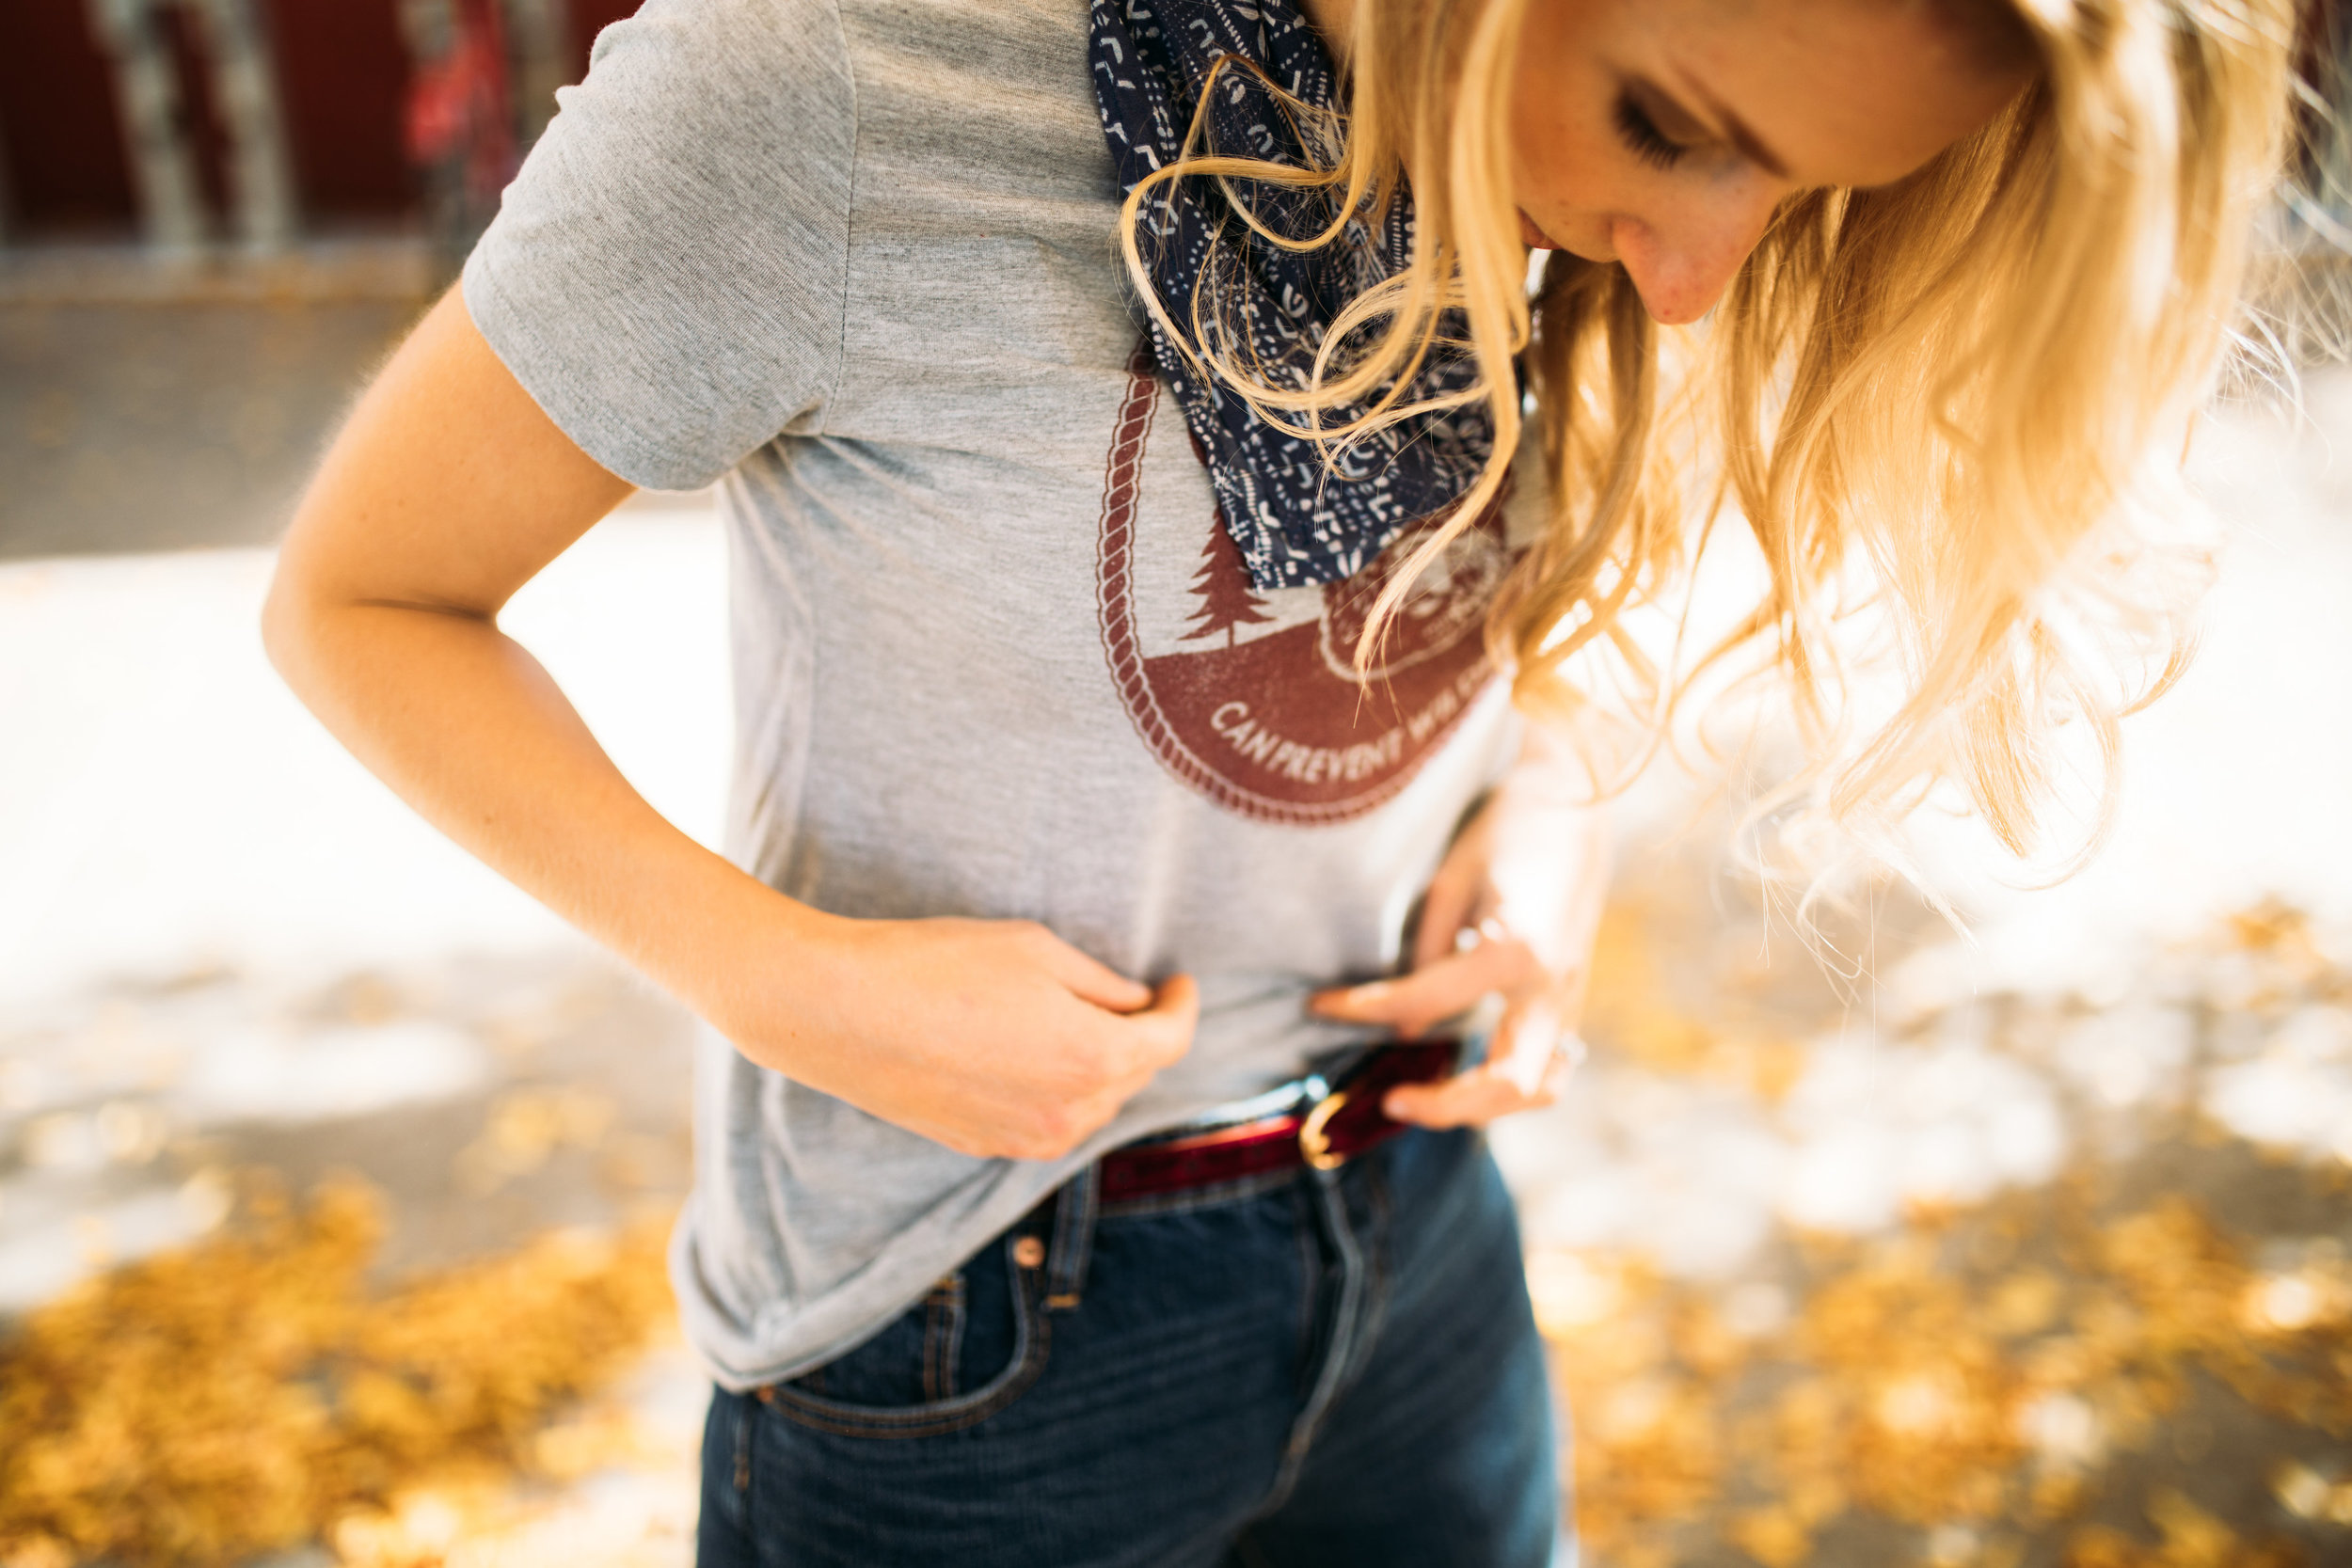 The Style Shop by Sandi Mele - 10 Reasons to Try a High-Waisted Jean